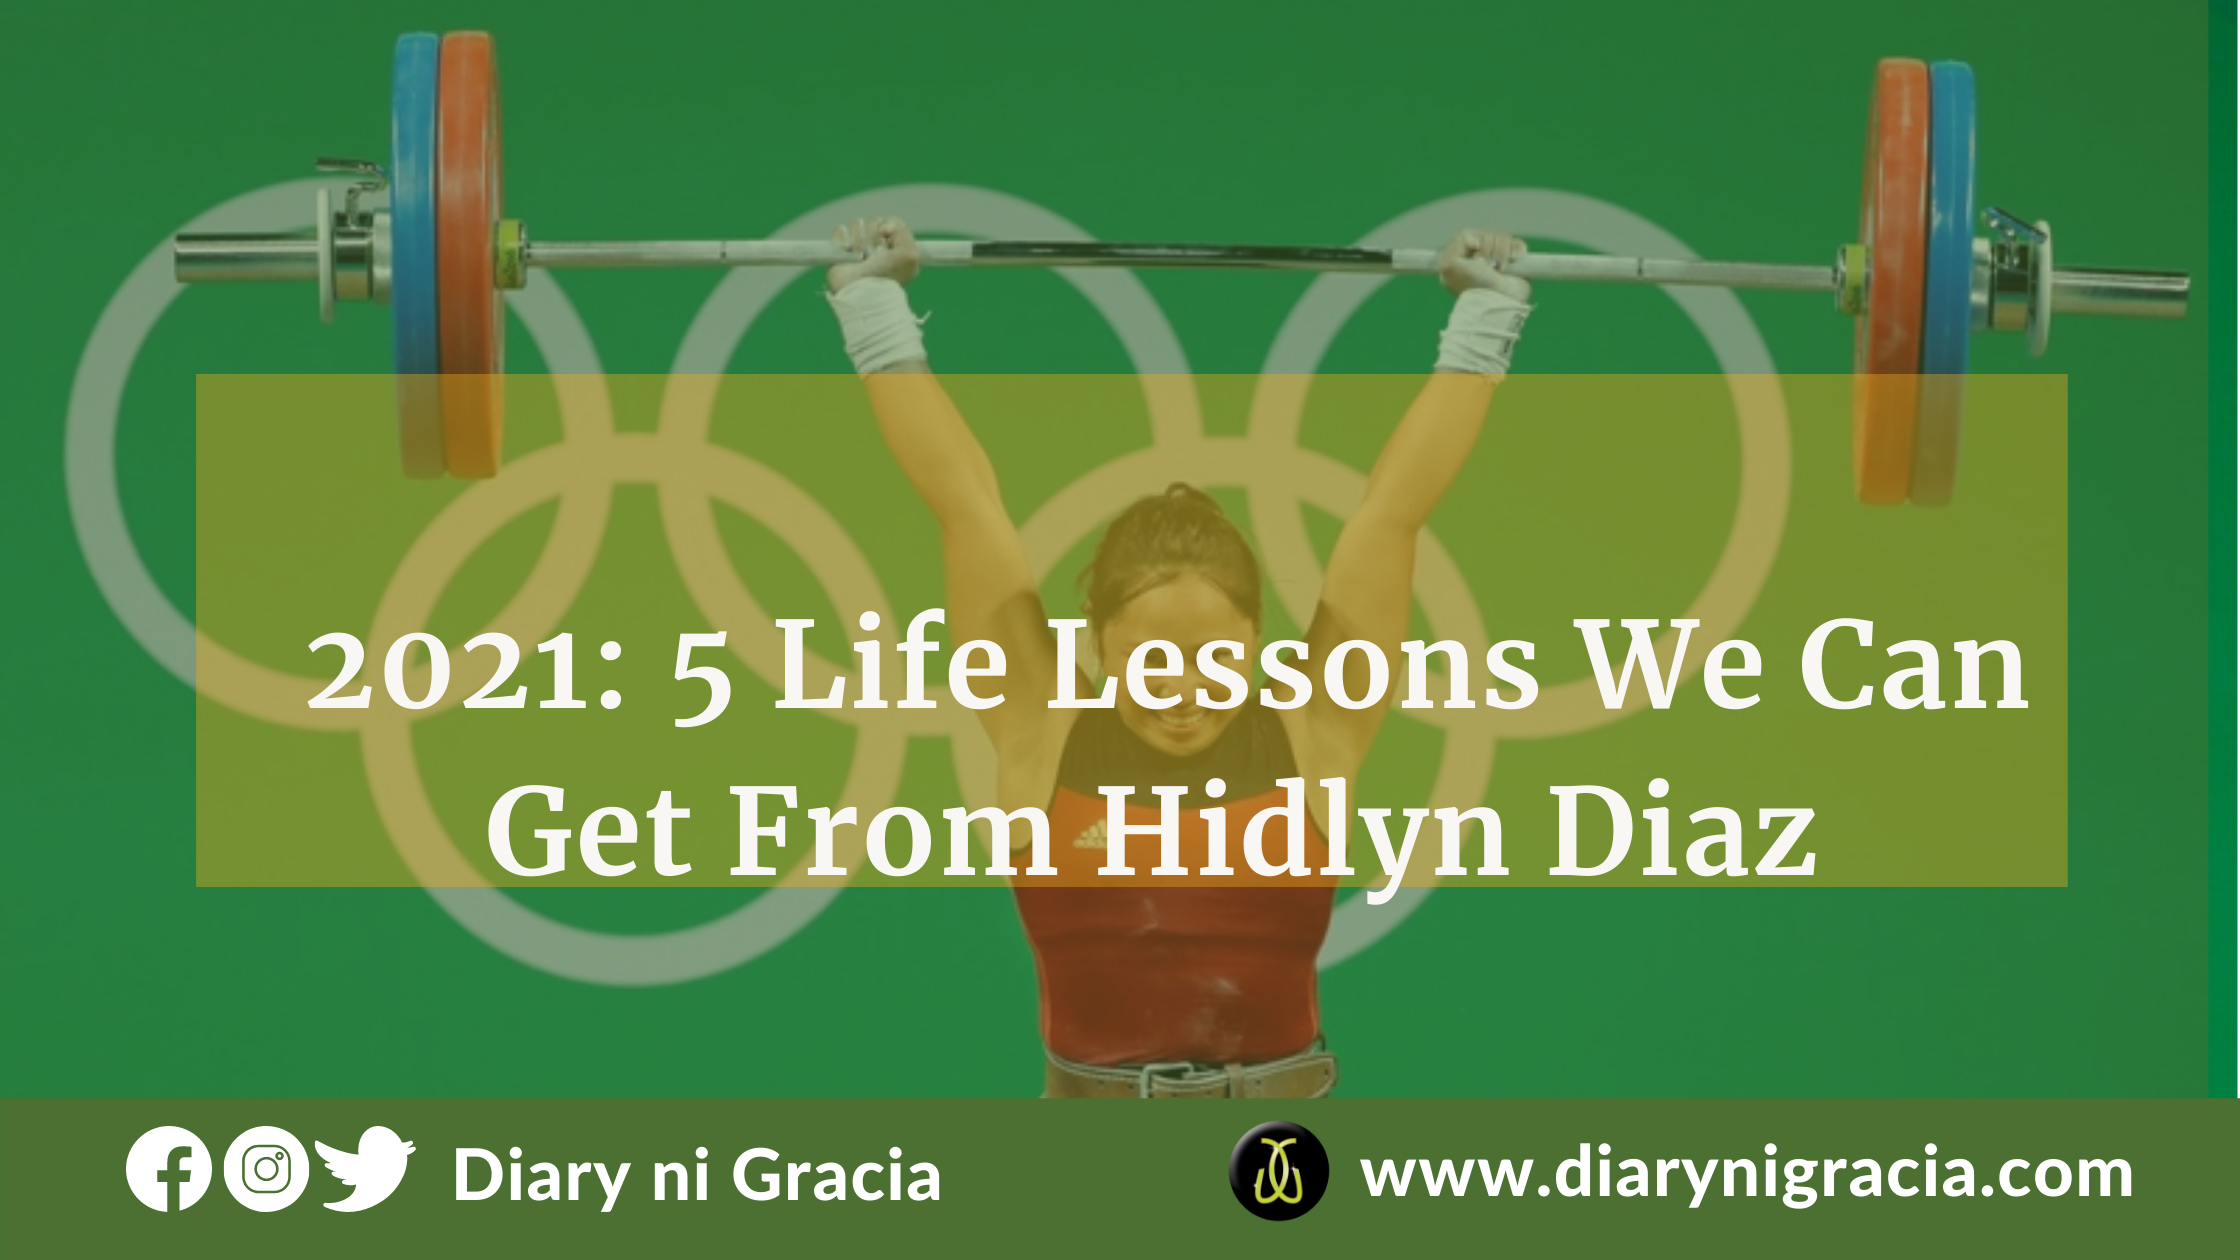 2021 5 Life Lessons We Can Get From Hidlyn Diaz